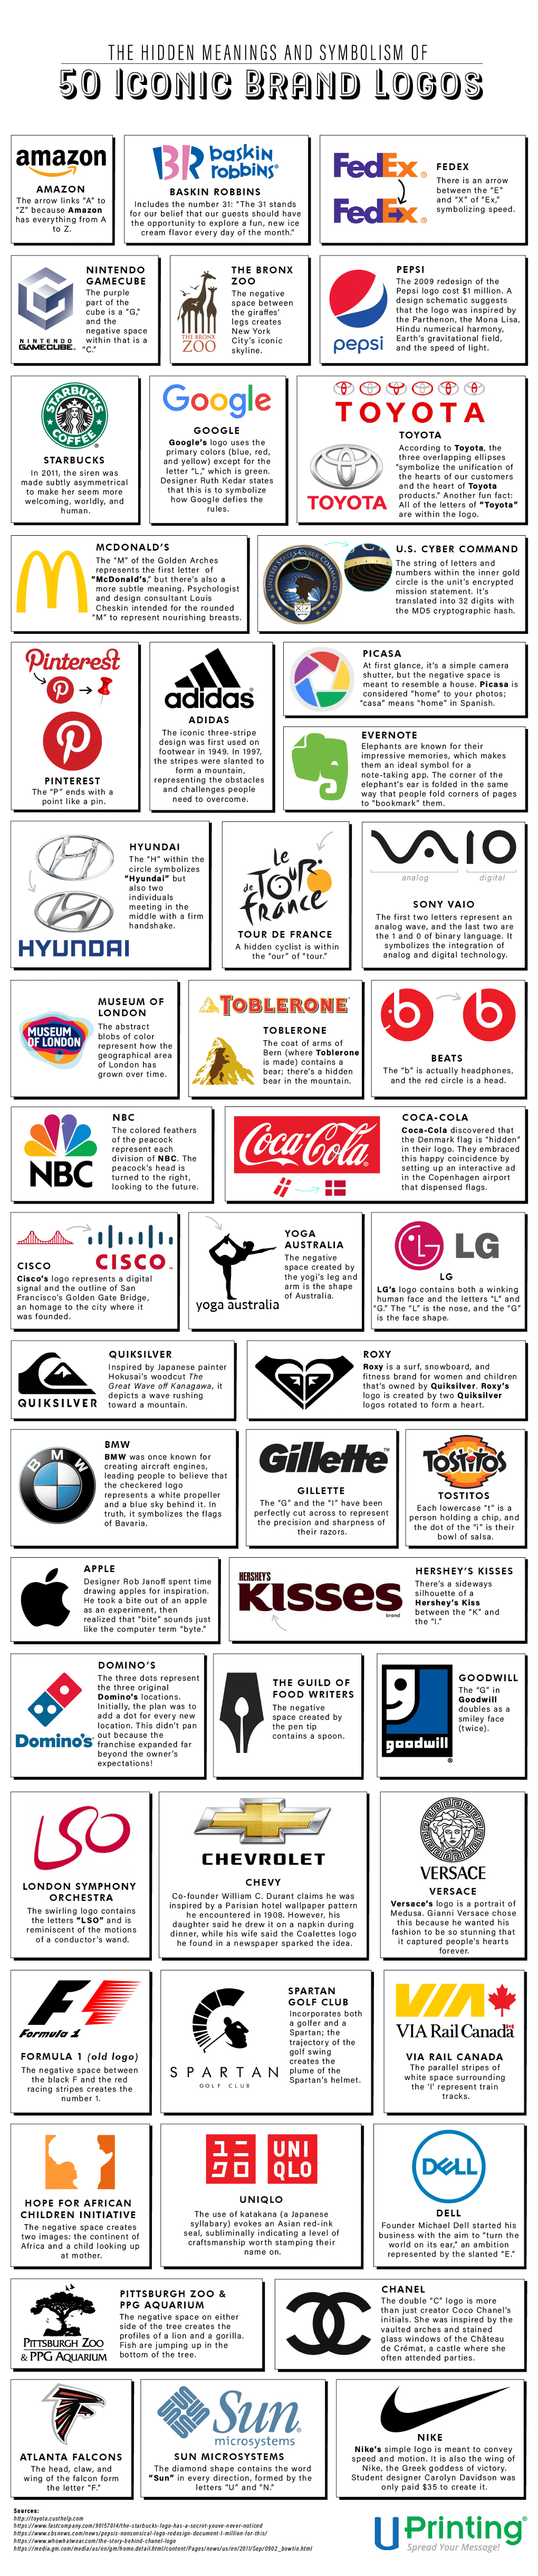 Hidden Meanings And Symbolism Of 50 Iconic Brand Logos